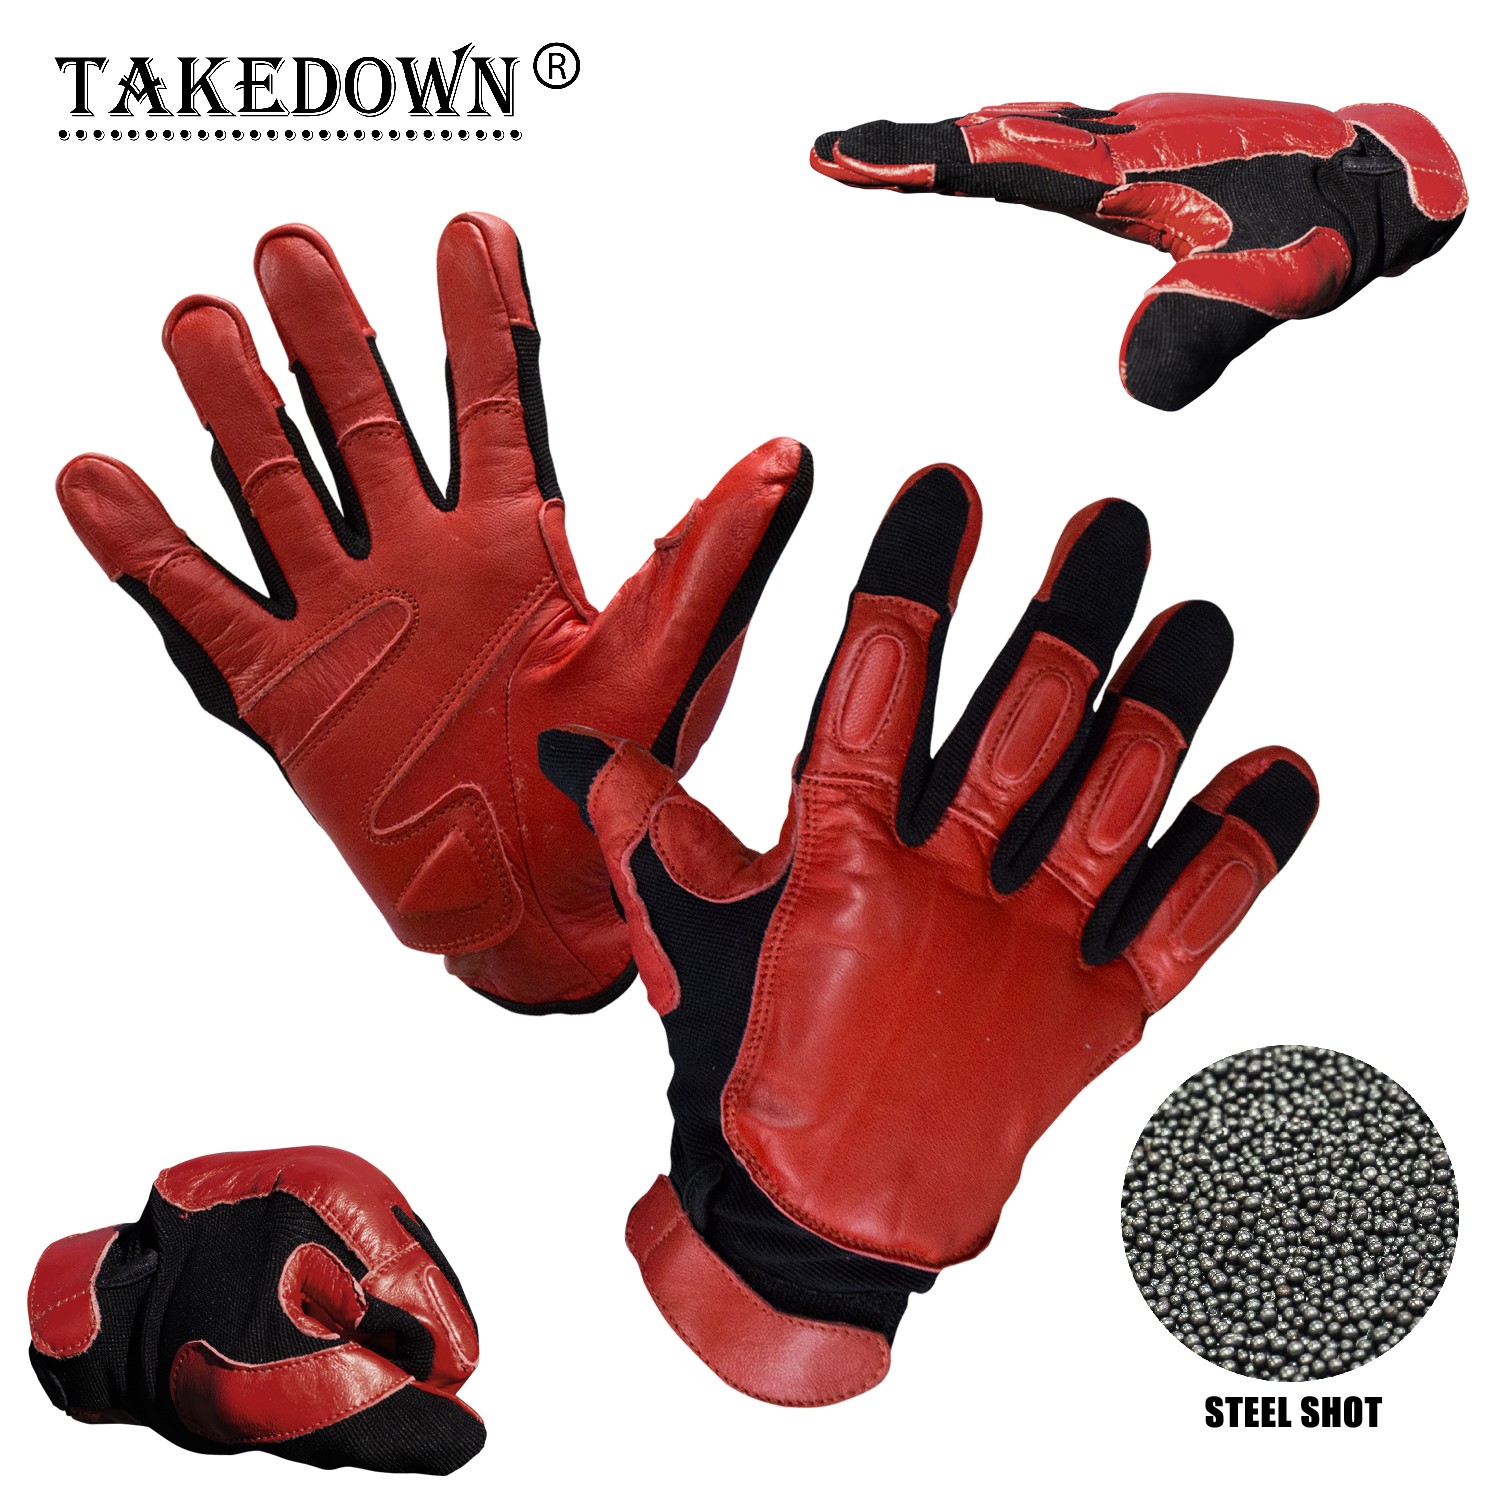 X-Large Law Enforcement Red & Black Real LEATHER Sap GLOVES